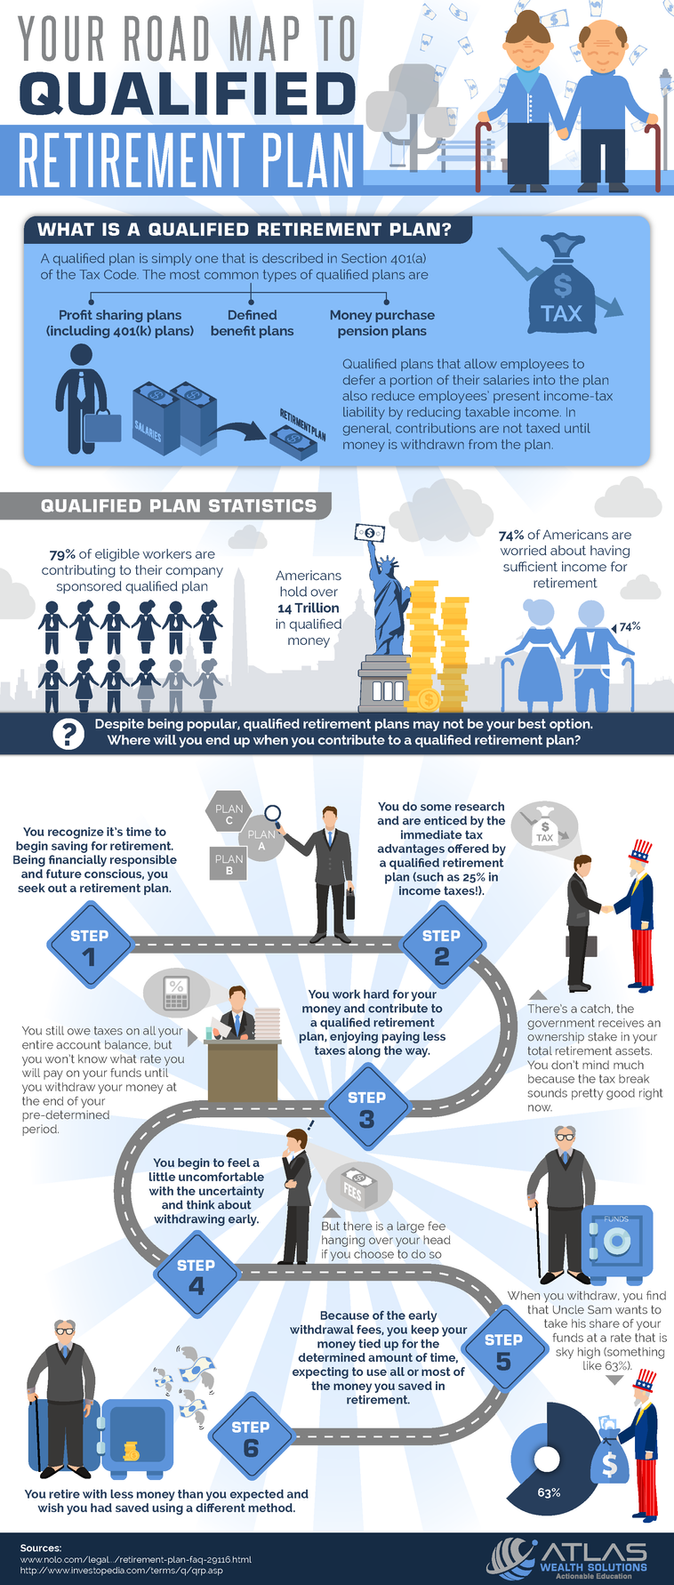 Your Road Map to Qualified Retierment Plan